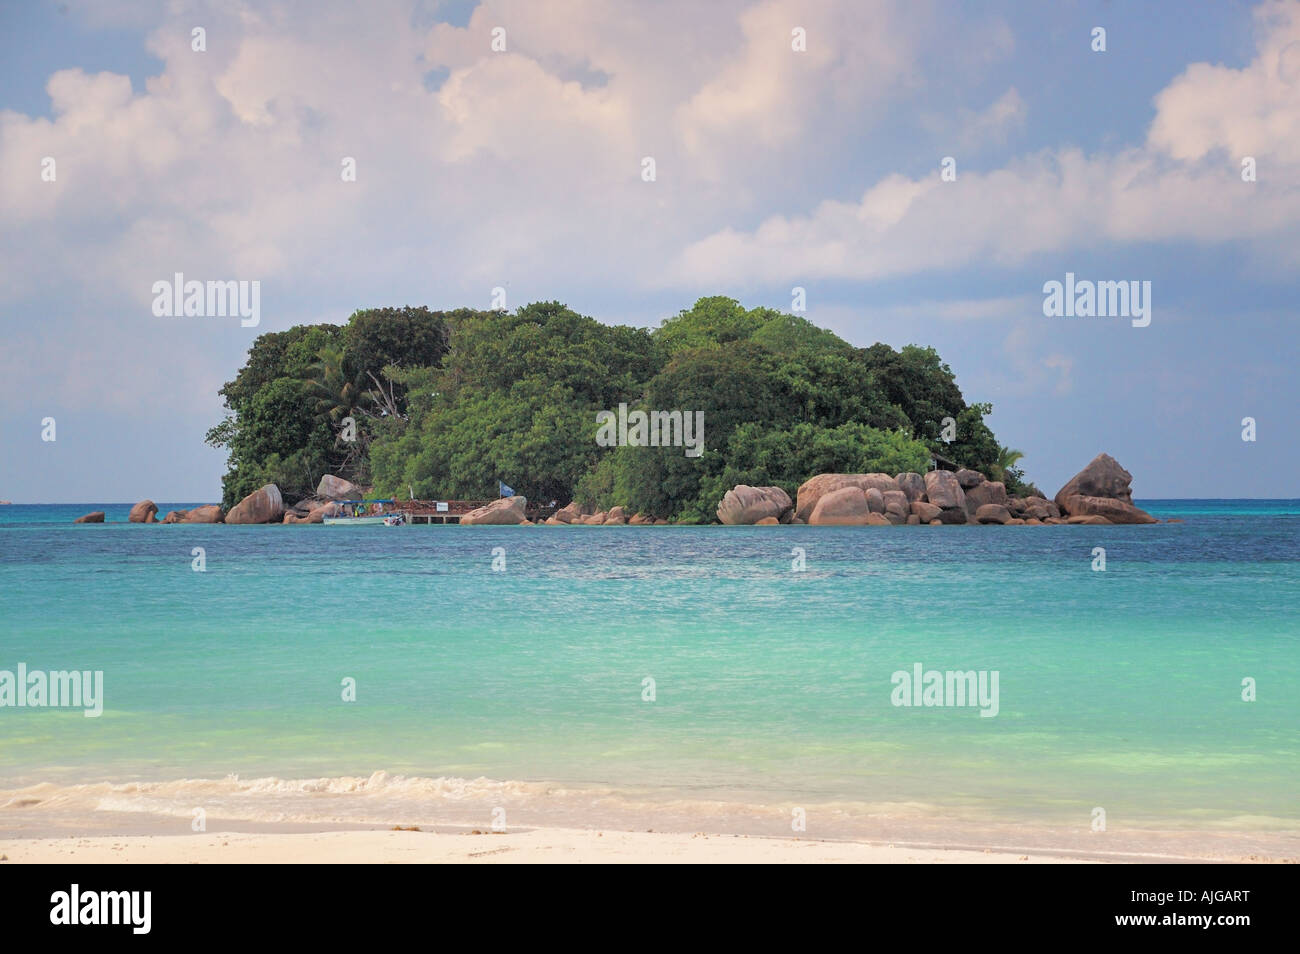 Tiny tropical island in the warm waters of the Indian Ocean Stock Photo